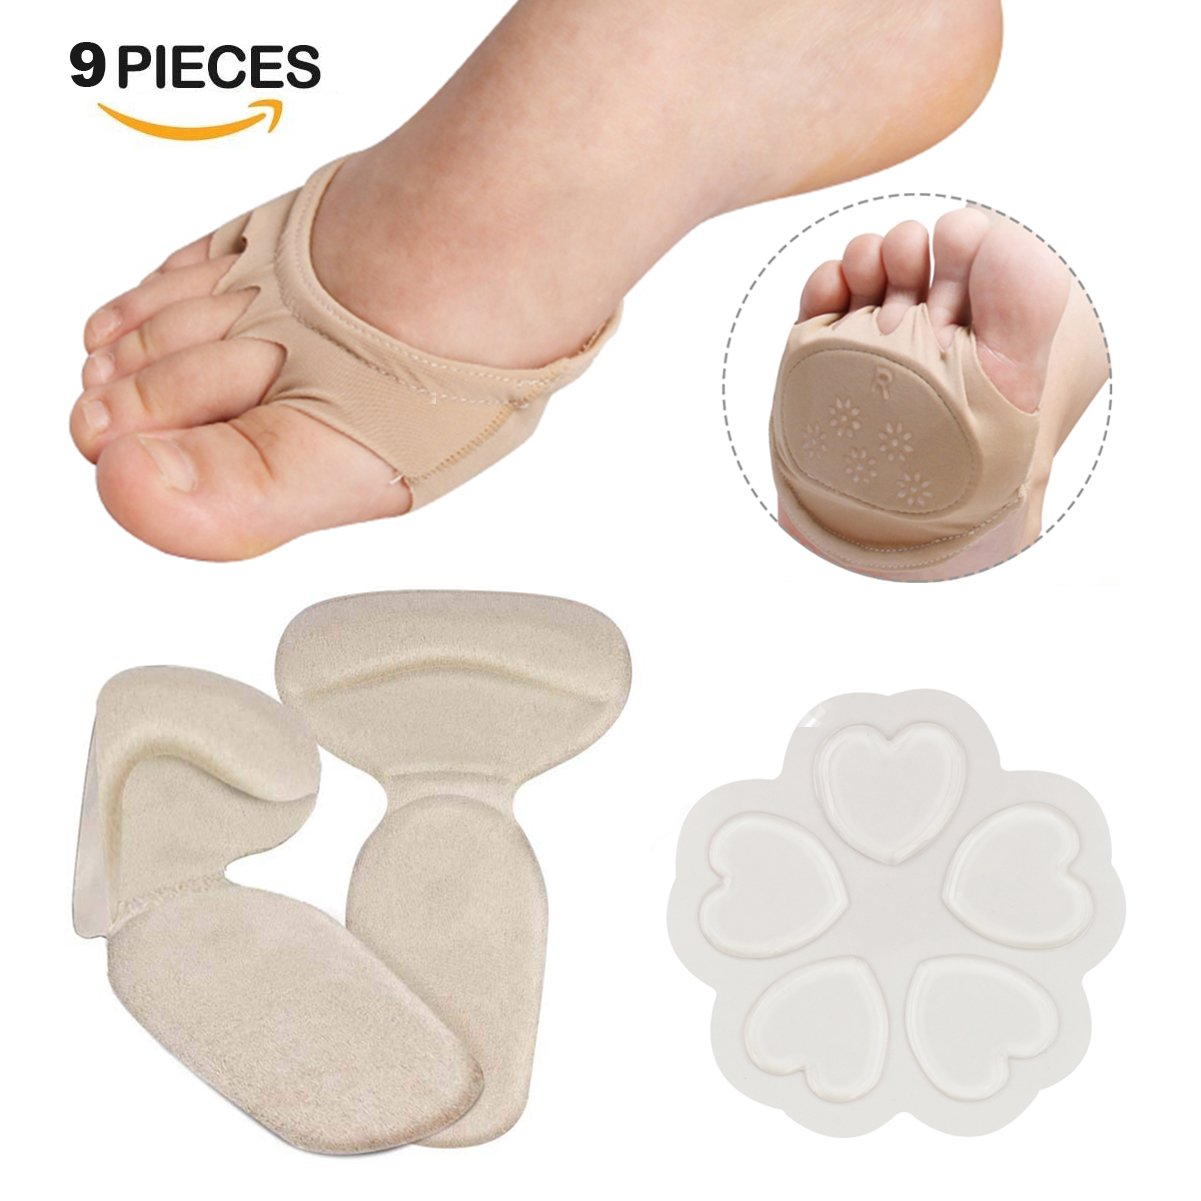 Forefoot Cushions, High Heel Inserts, Heel Grips, Forefoot Pain Relief For Women